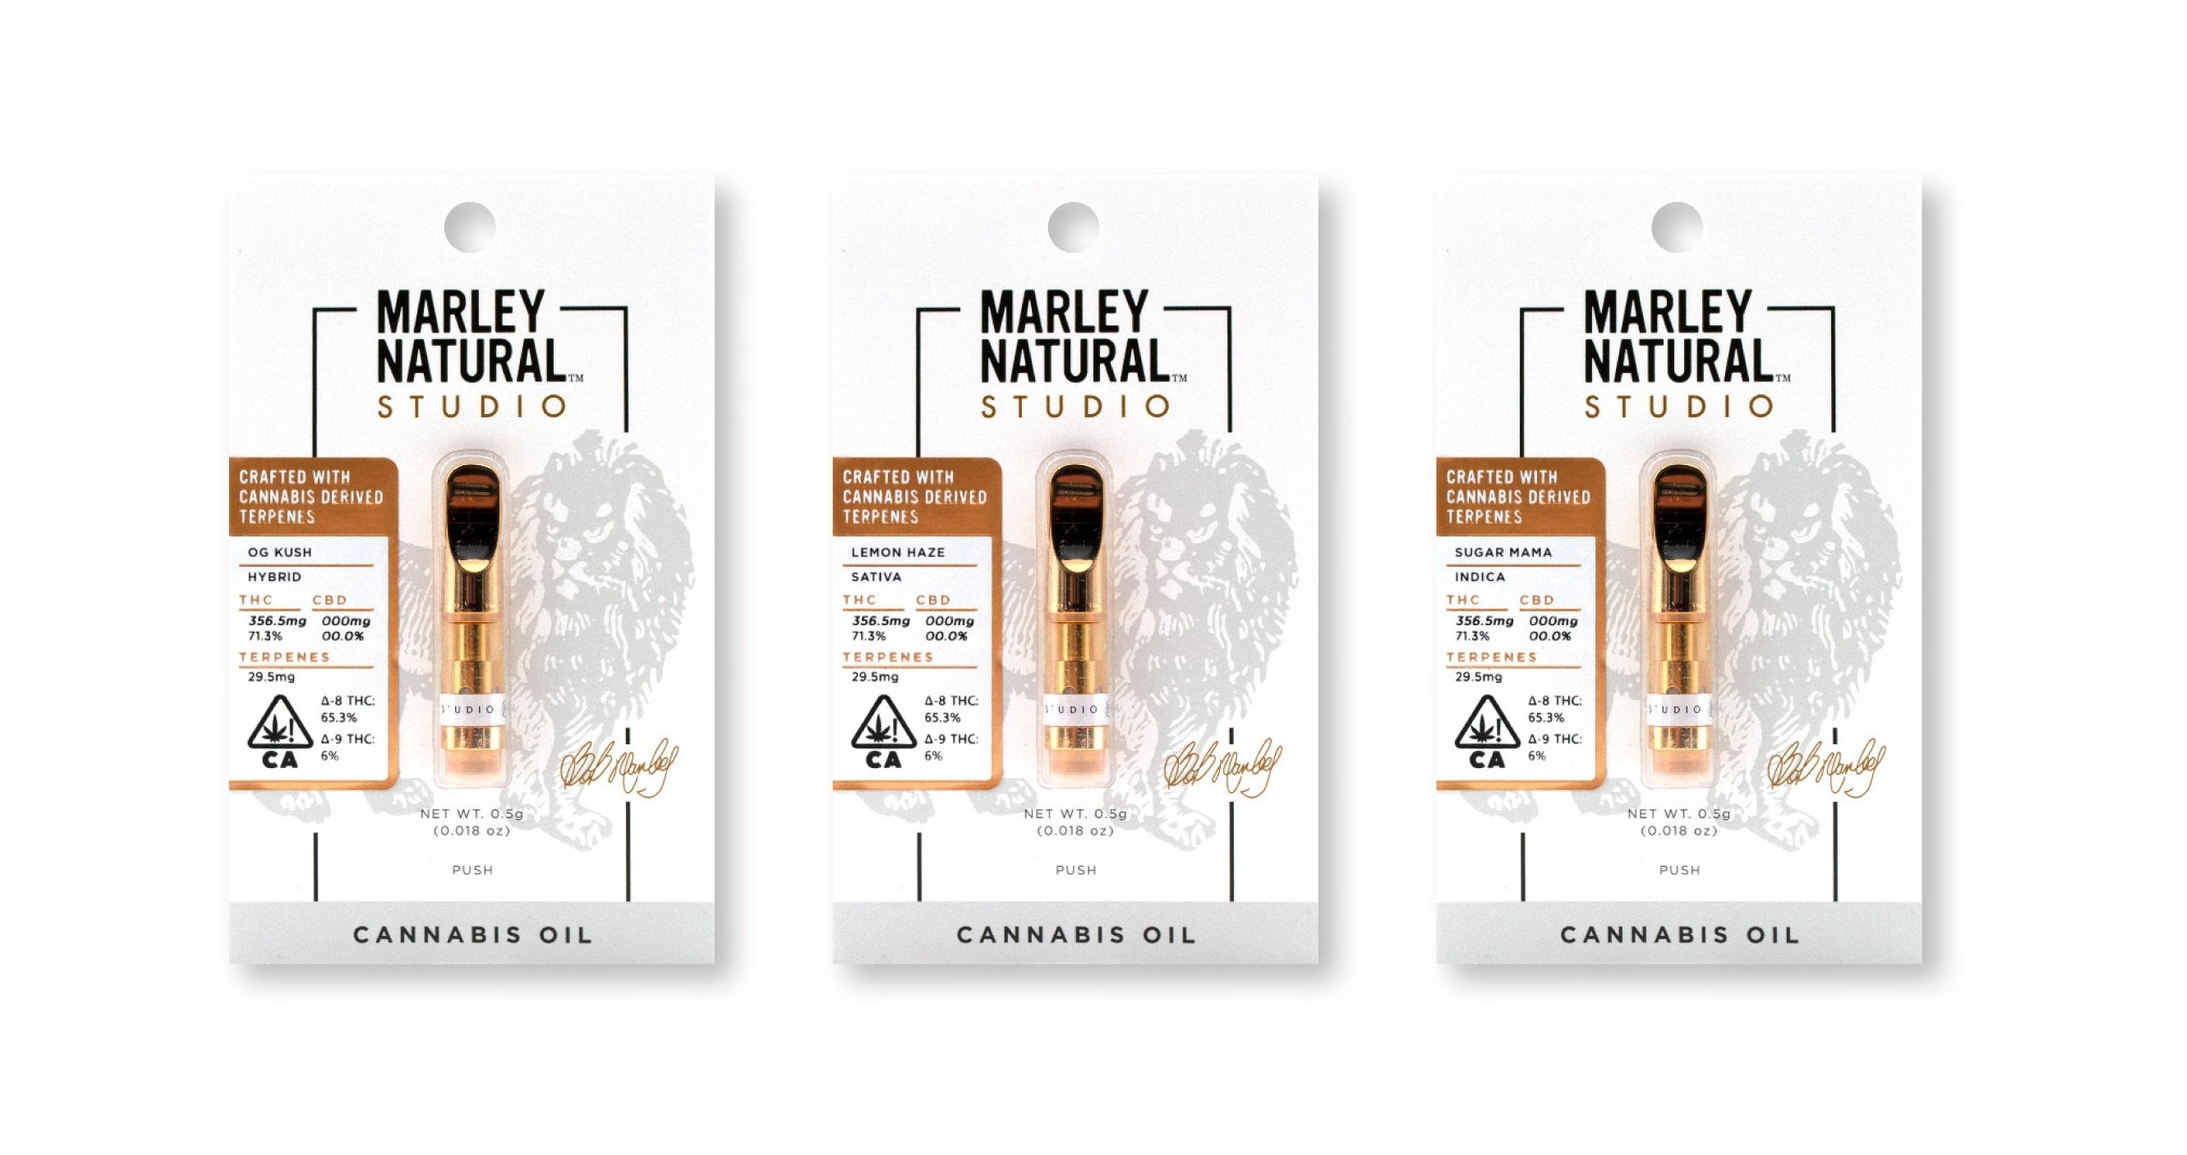 Studio Vape cartridges - In collaboration with exceptional extractors, our vape oils are developed exclusively for Marley Natural™ STUDIO: rooted in tried-and-true classic strains, with reintroduced 100% strain-derived cannabis terpenes, and most uniquely, a potent boost of converted Delta-8-THC.Learn more about Delta-8-THC HERE.0.5g